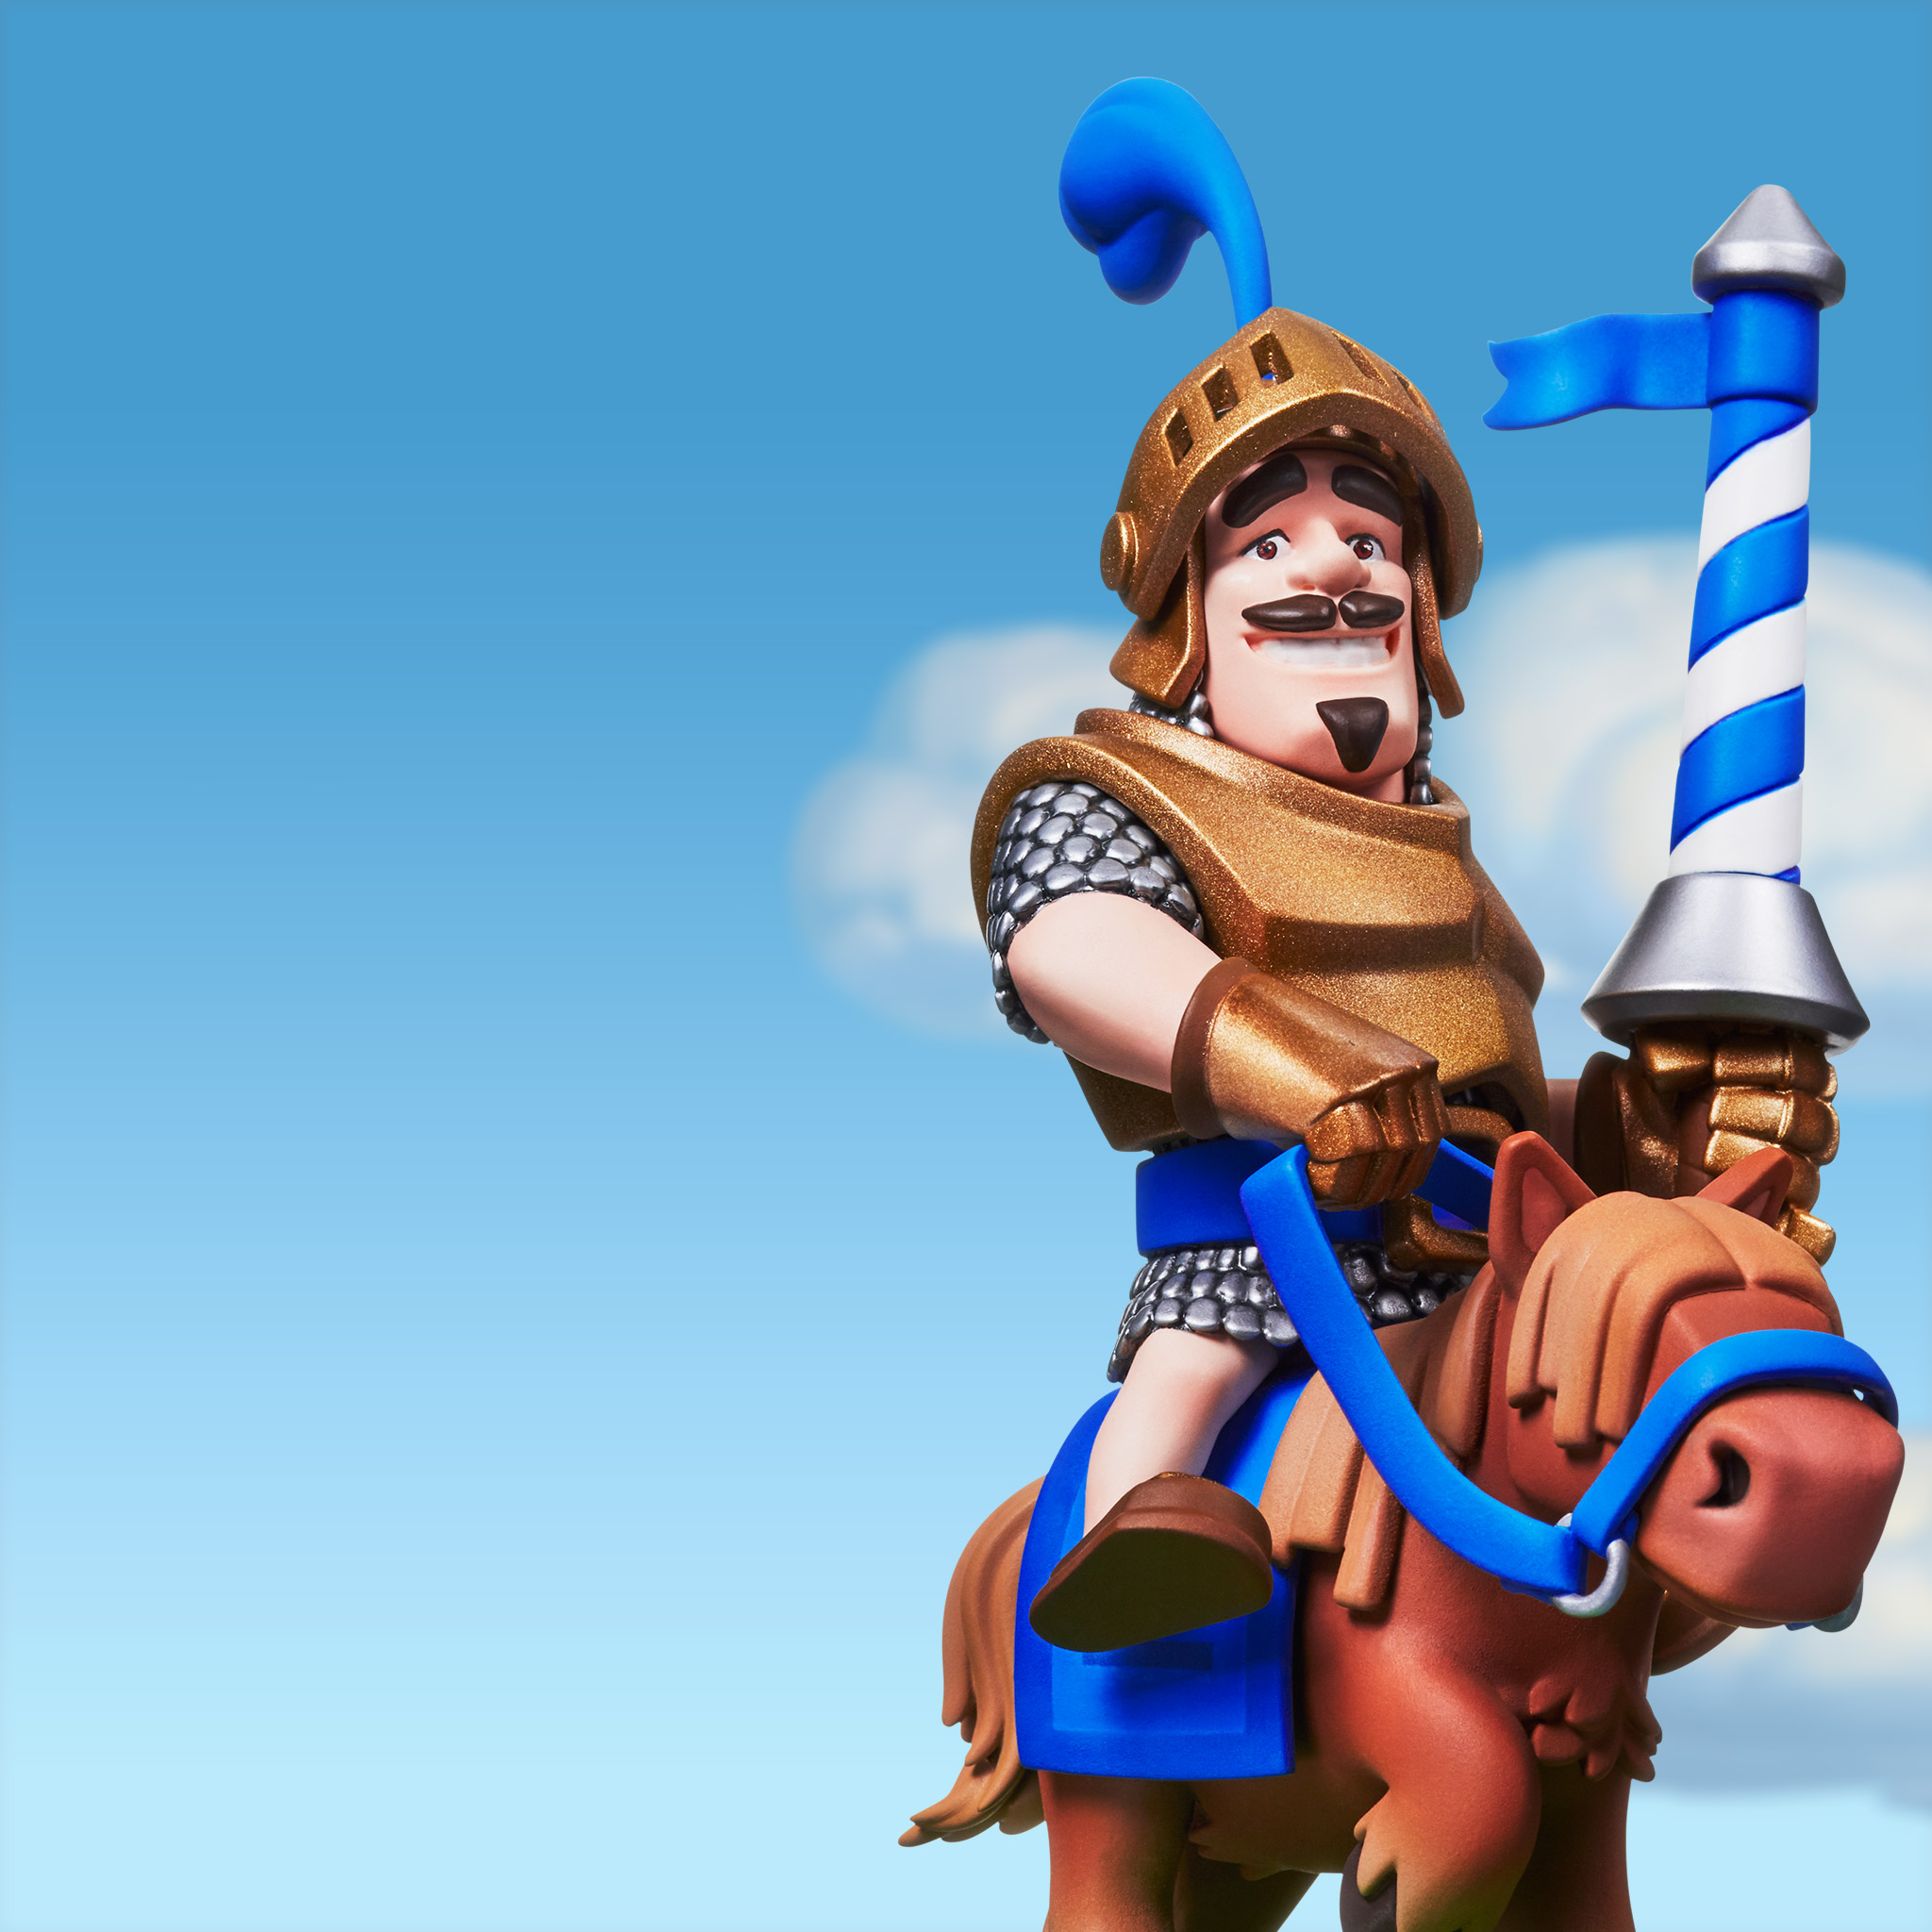 Clash royale prince hd games 4k wallpapers images backgrounds photos and pictures - Clash royale 2560x1440 ...